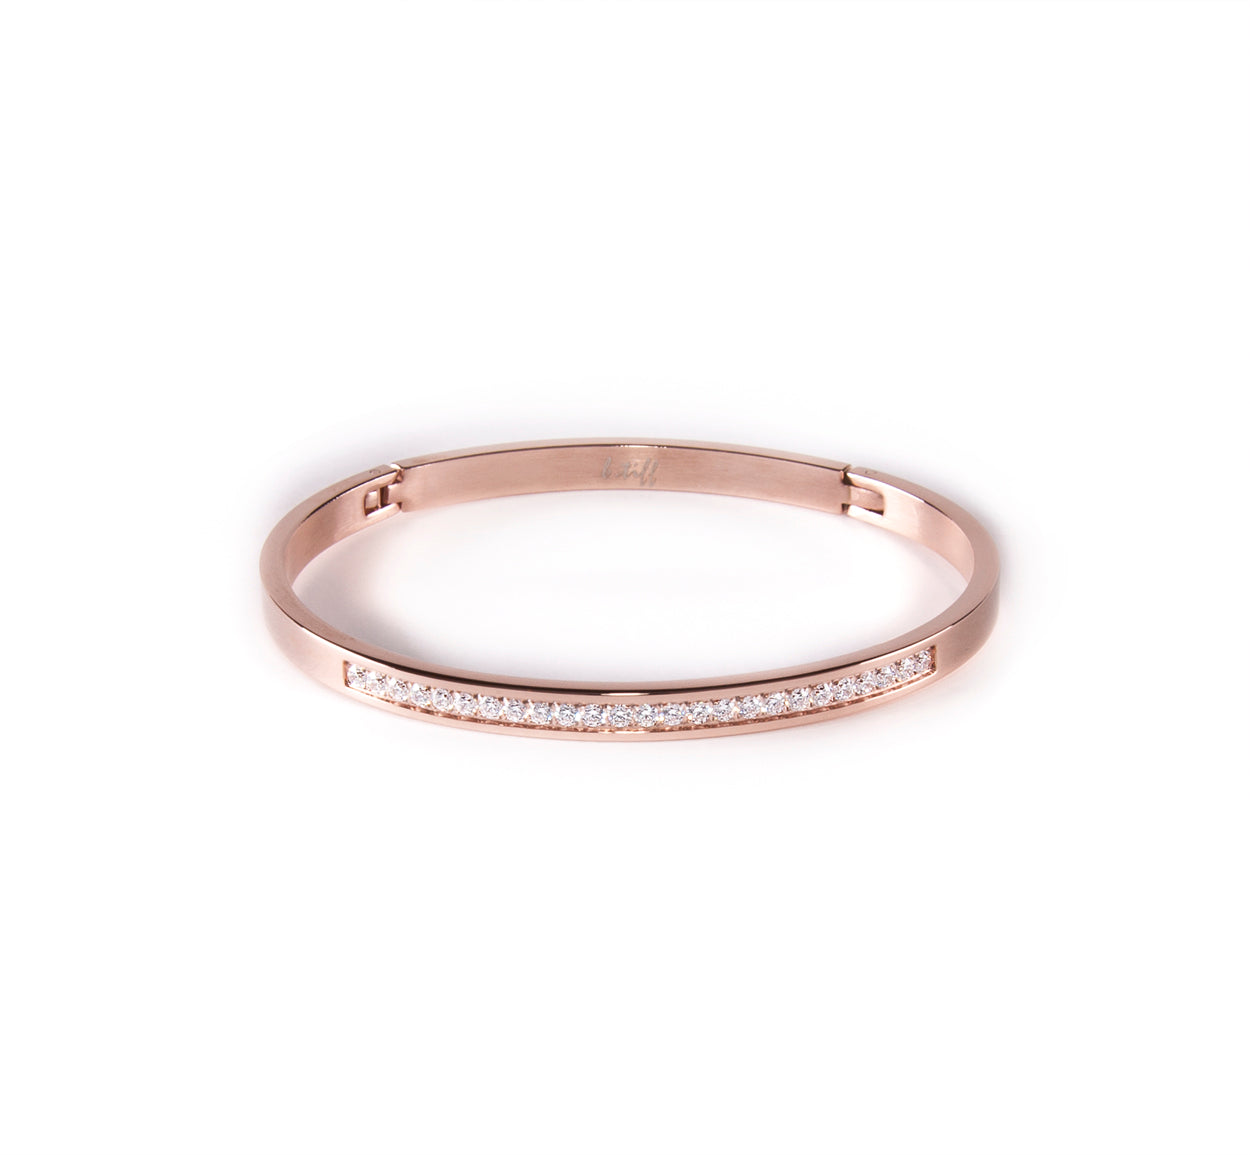 mix fashion jewelry, shop mix, nyc, new york, bracelets, bangles, necklaces, earrings, ear rings, sterling silver, gold, vermeil, b.tiff, bangle, hypoallergenic